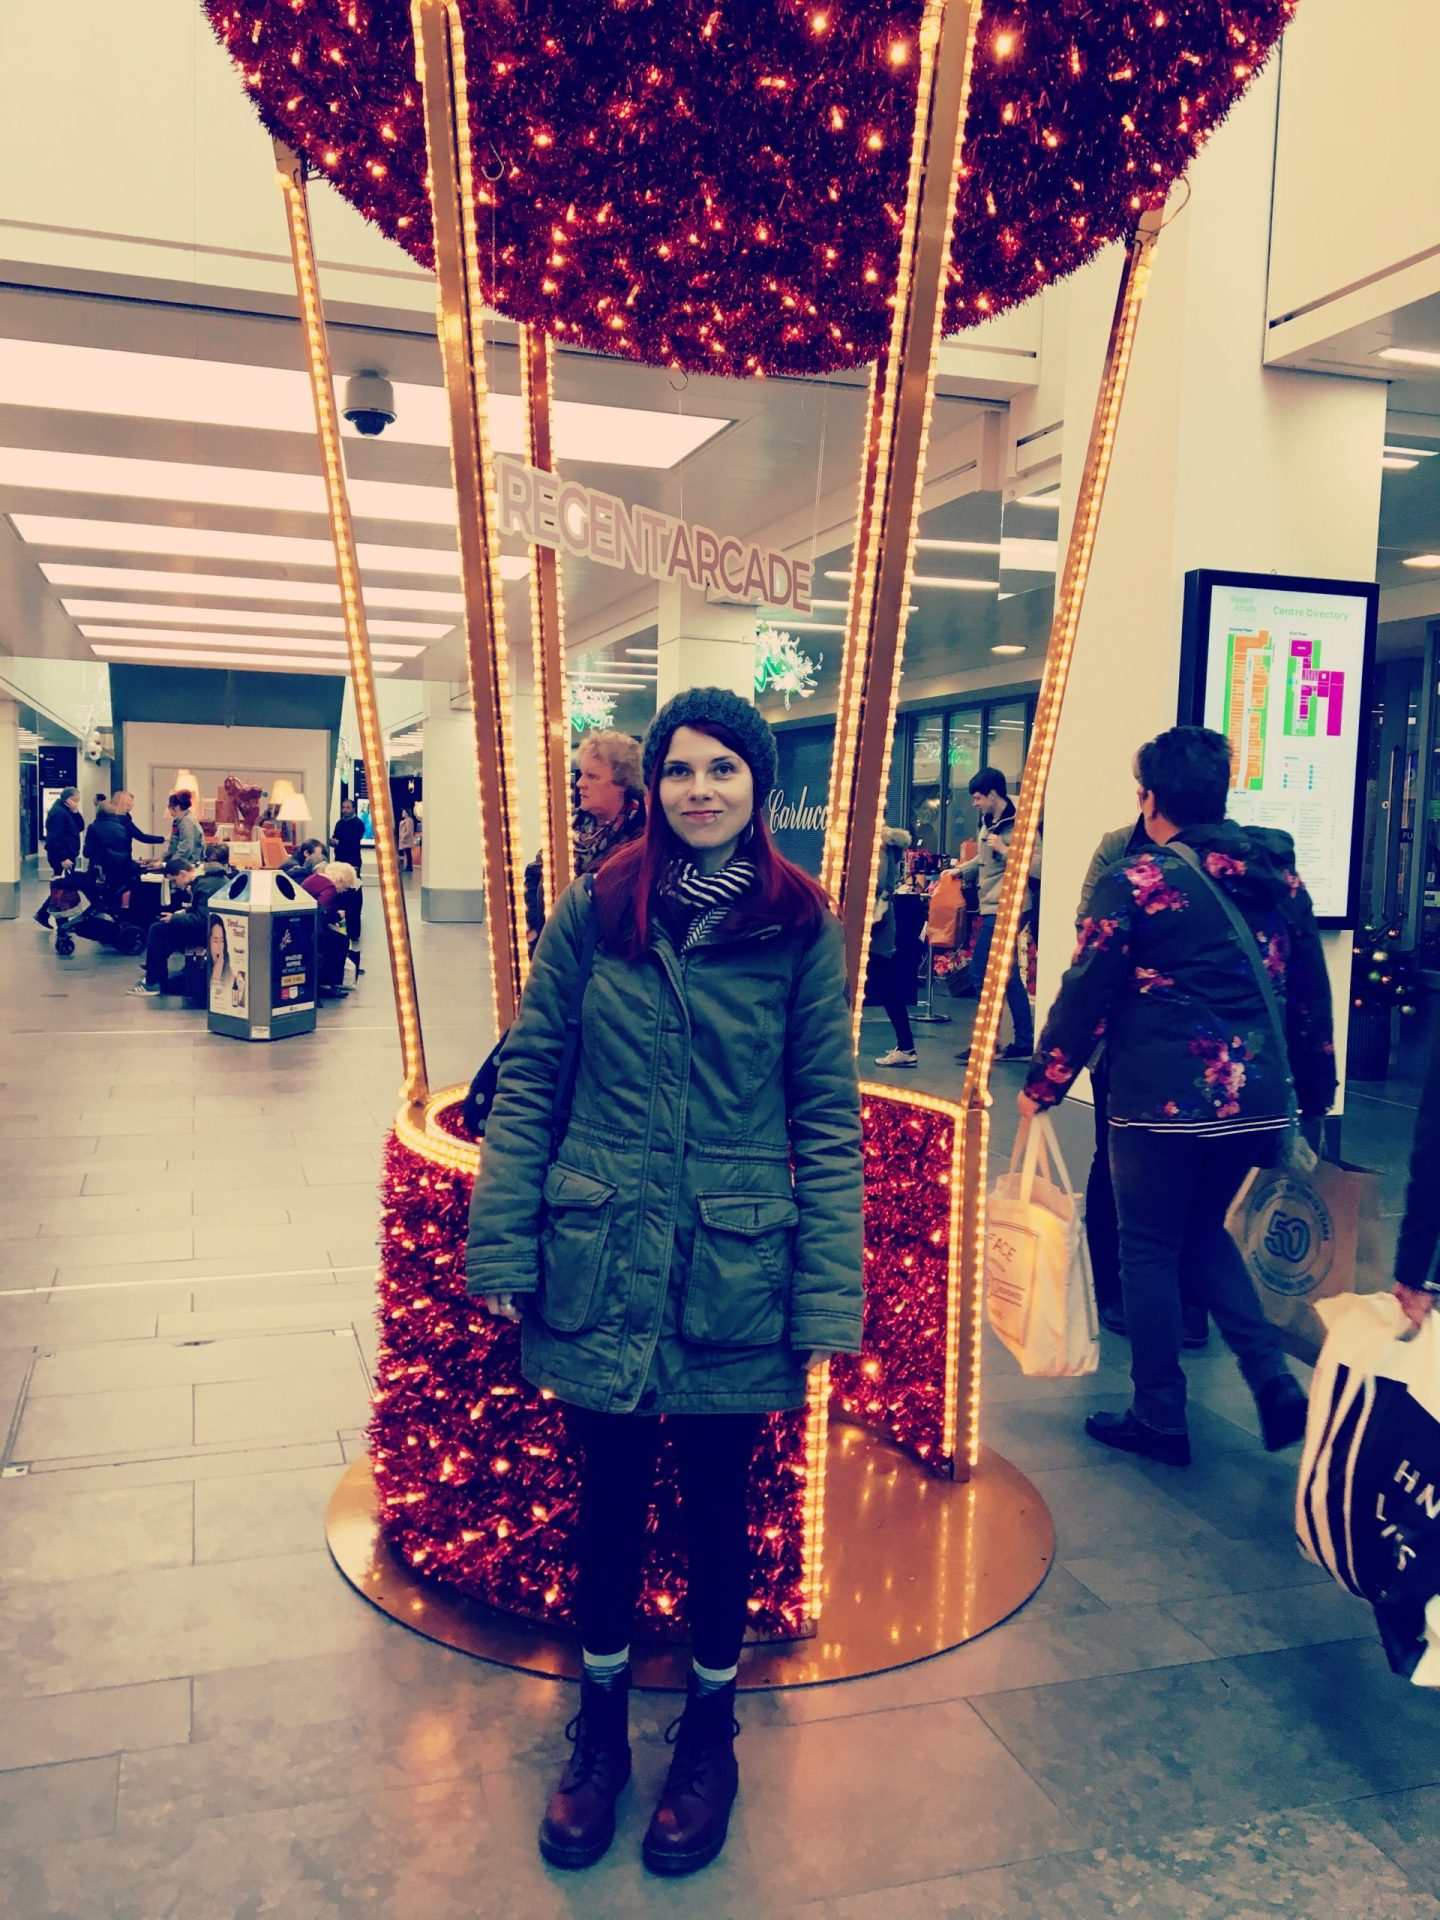 A photo of a large gold and red hot air balloon, twinkling with lights. It's in the middle of a shopping centre. I'm standing in front of it.